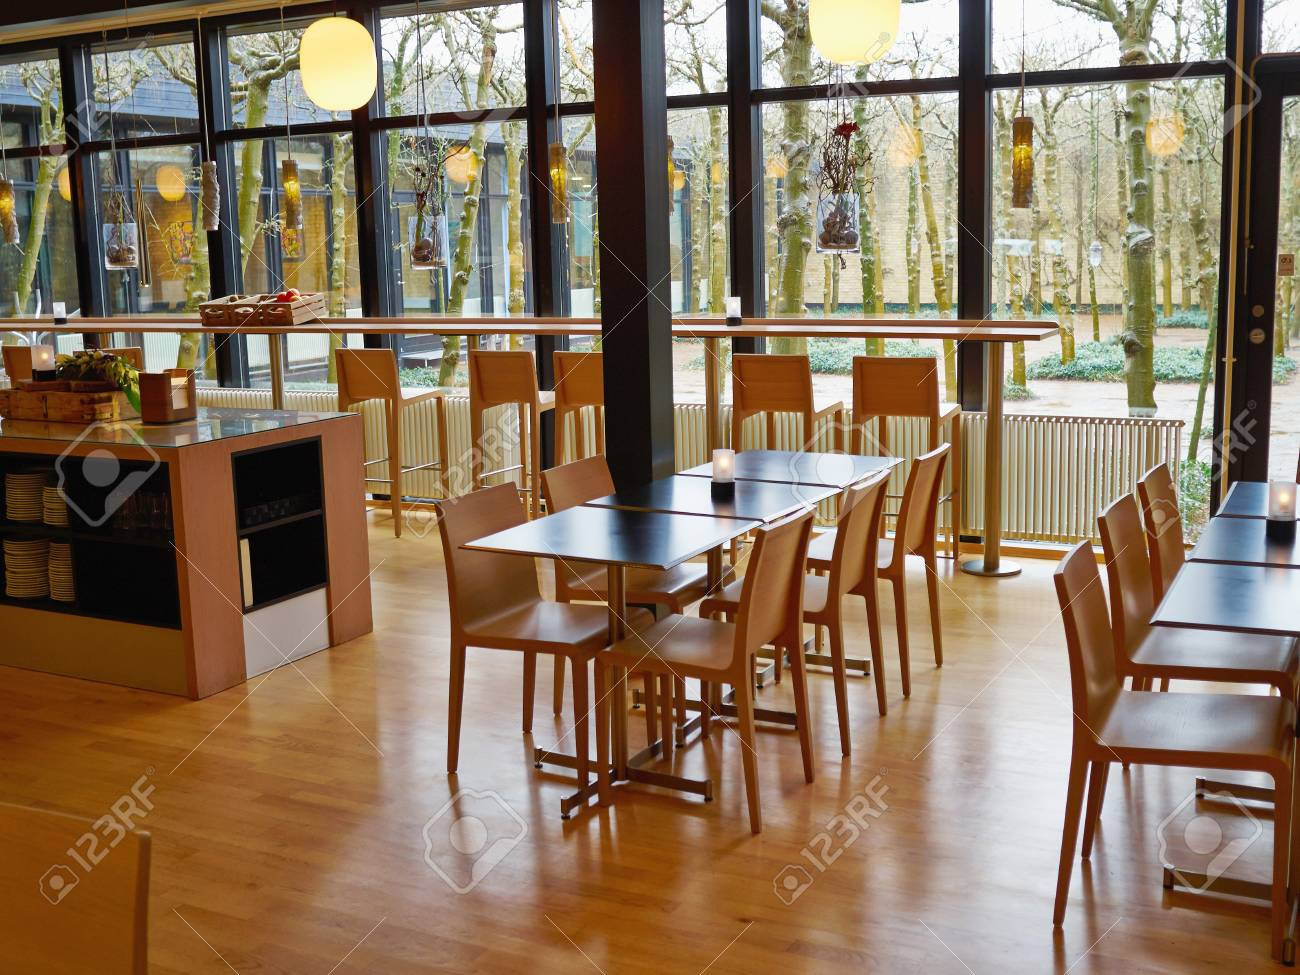 Modern Classical Design Coffee Shop Cafe Restaurant Interior Stock Photo Picture And Royalty Free Image Image 75429008